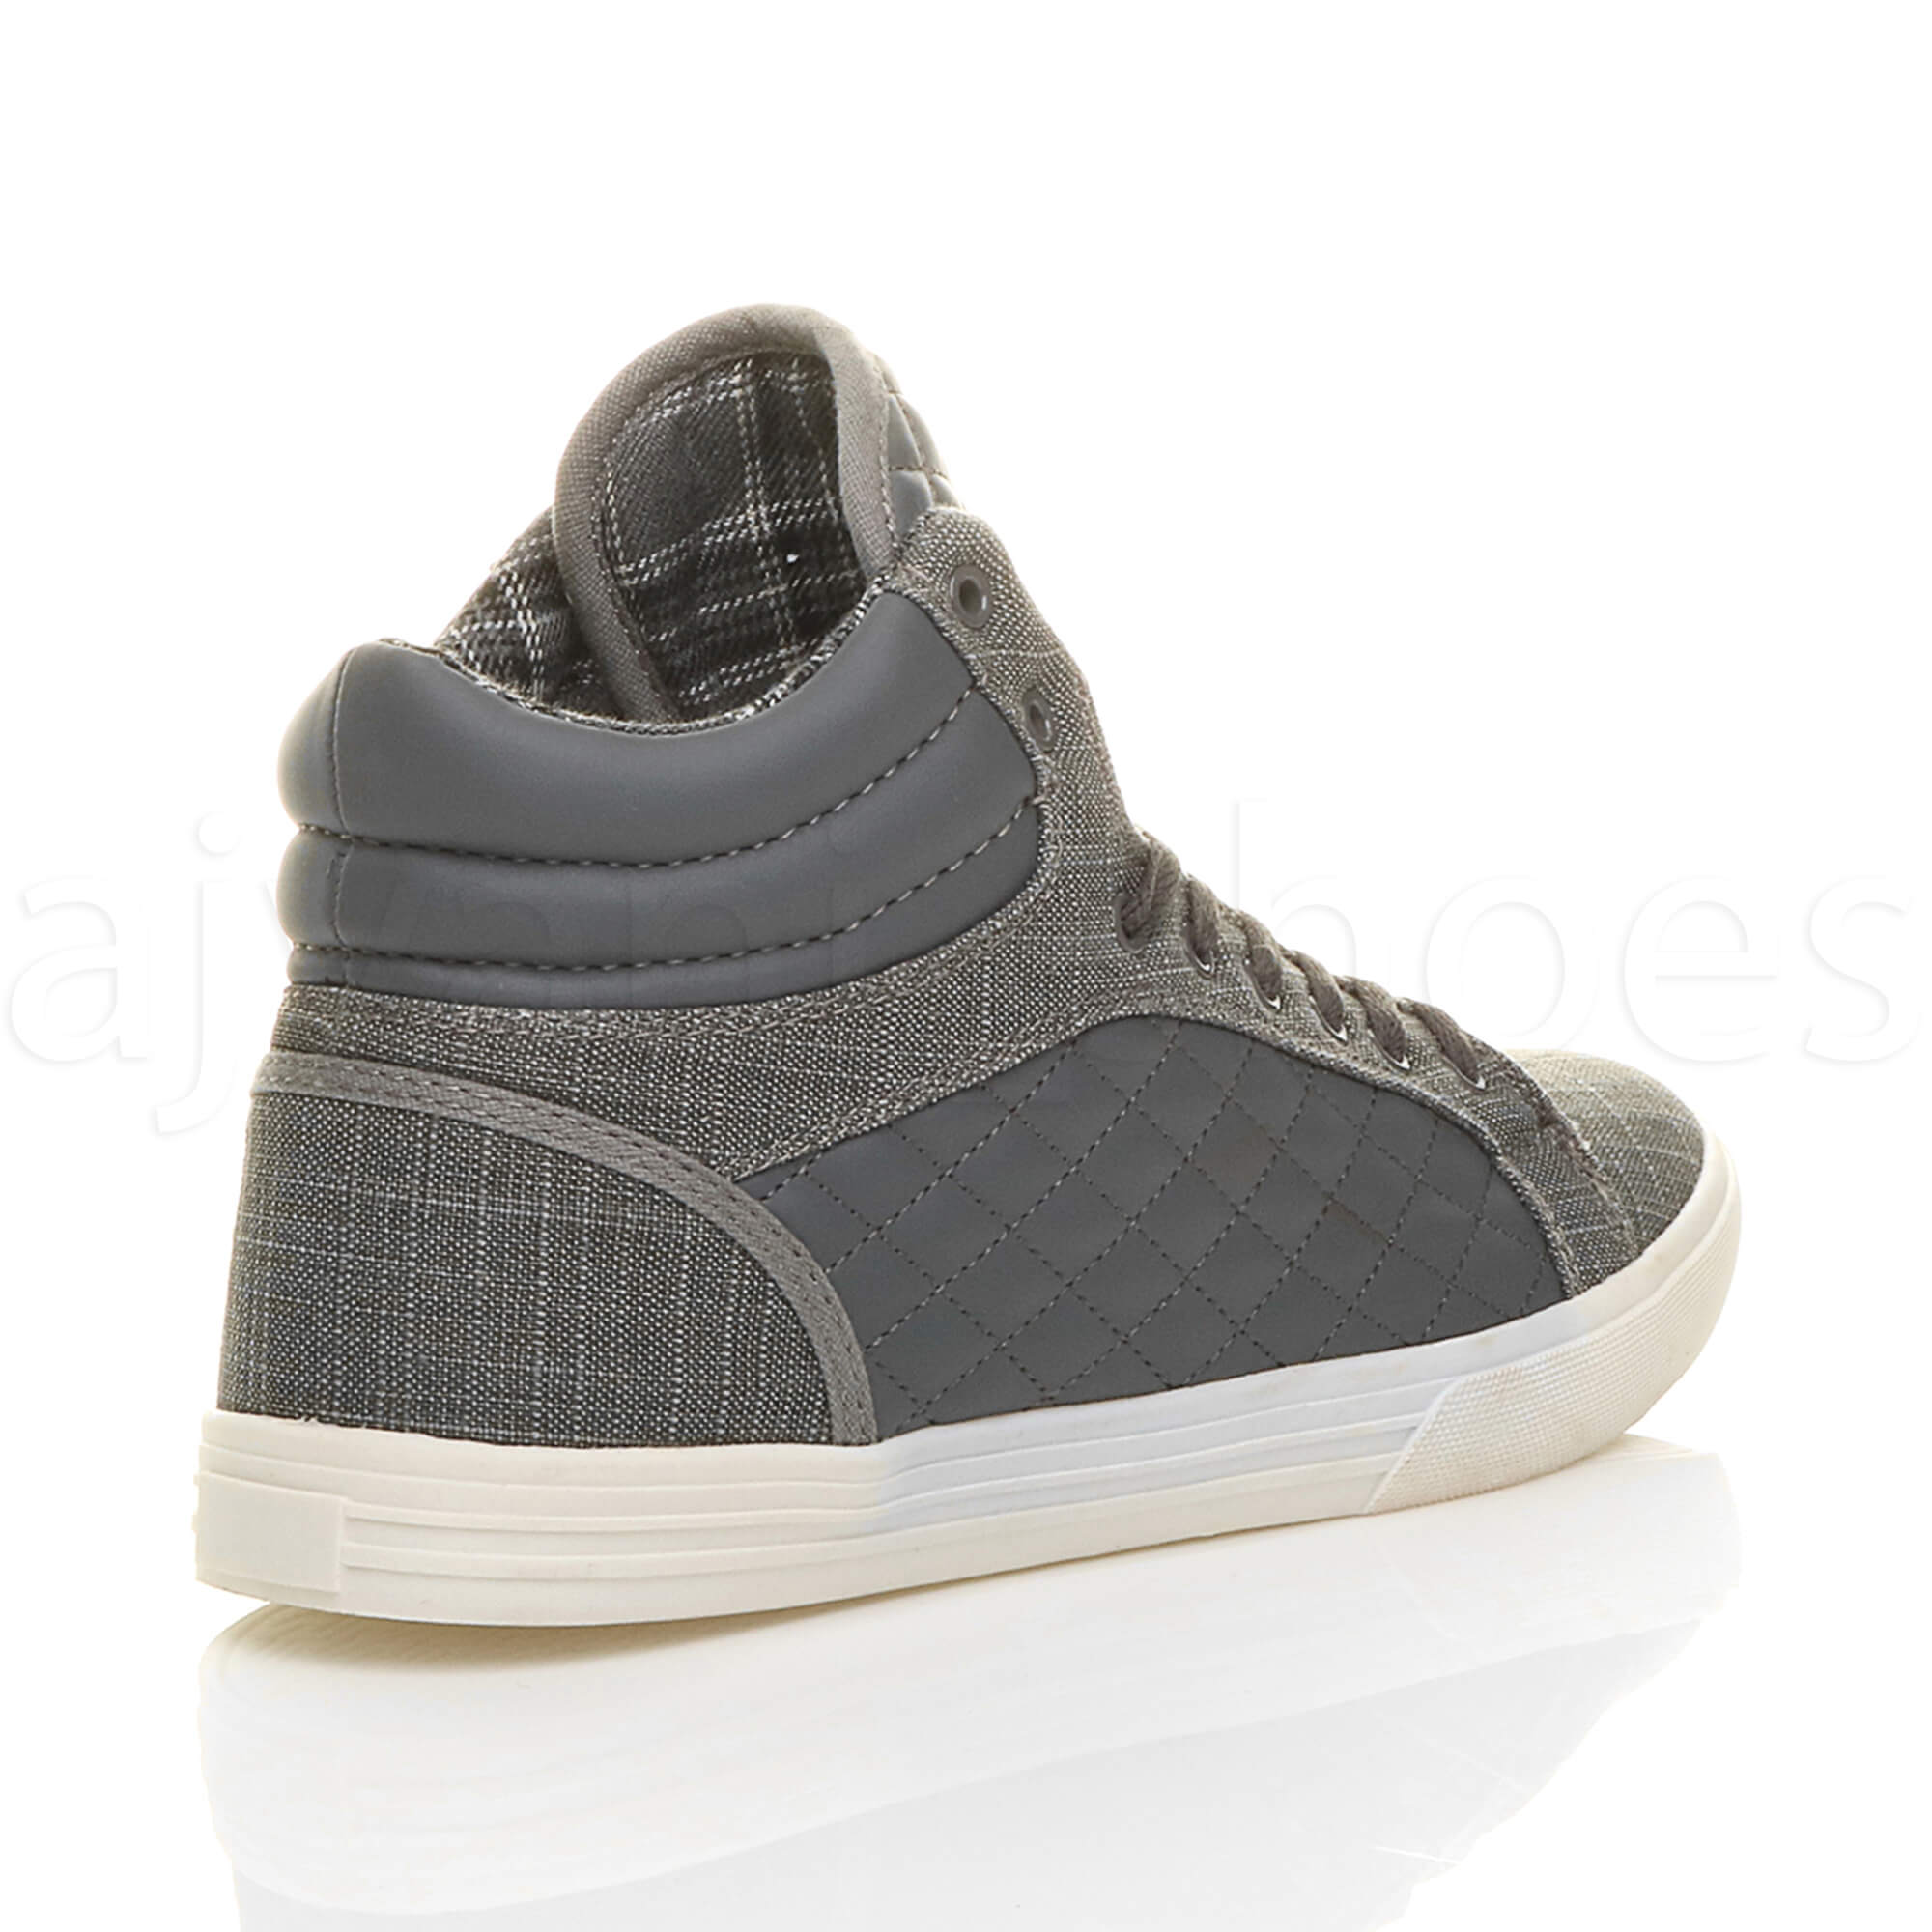 MENS-QUILTED-LACE-UP-FLAT-CASUAL-HI-HIGH-TOP-TRAINERS-SHOES-ANKLE-BOOTS-SIZE thumbnail 12